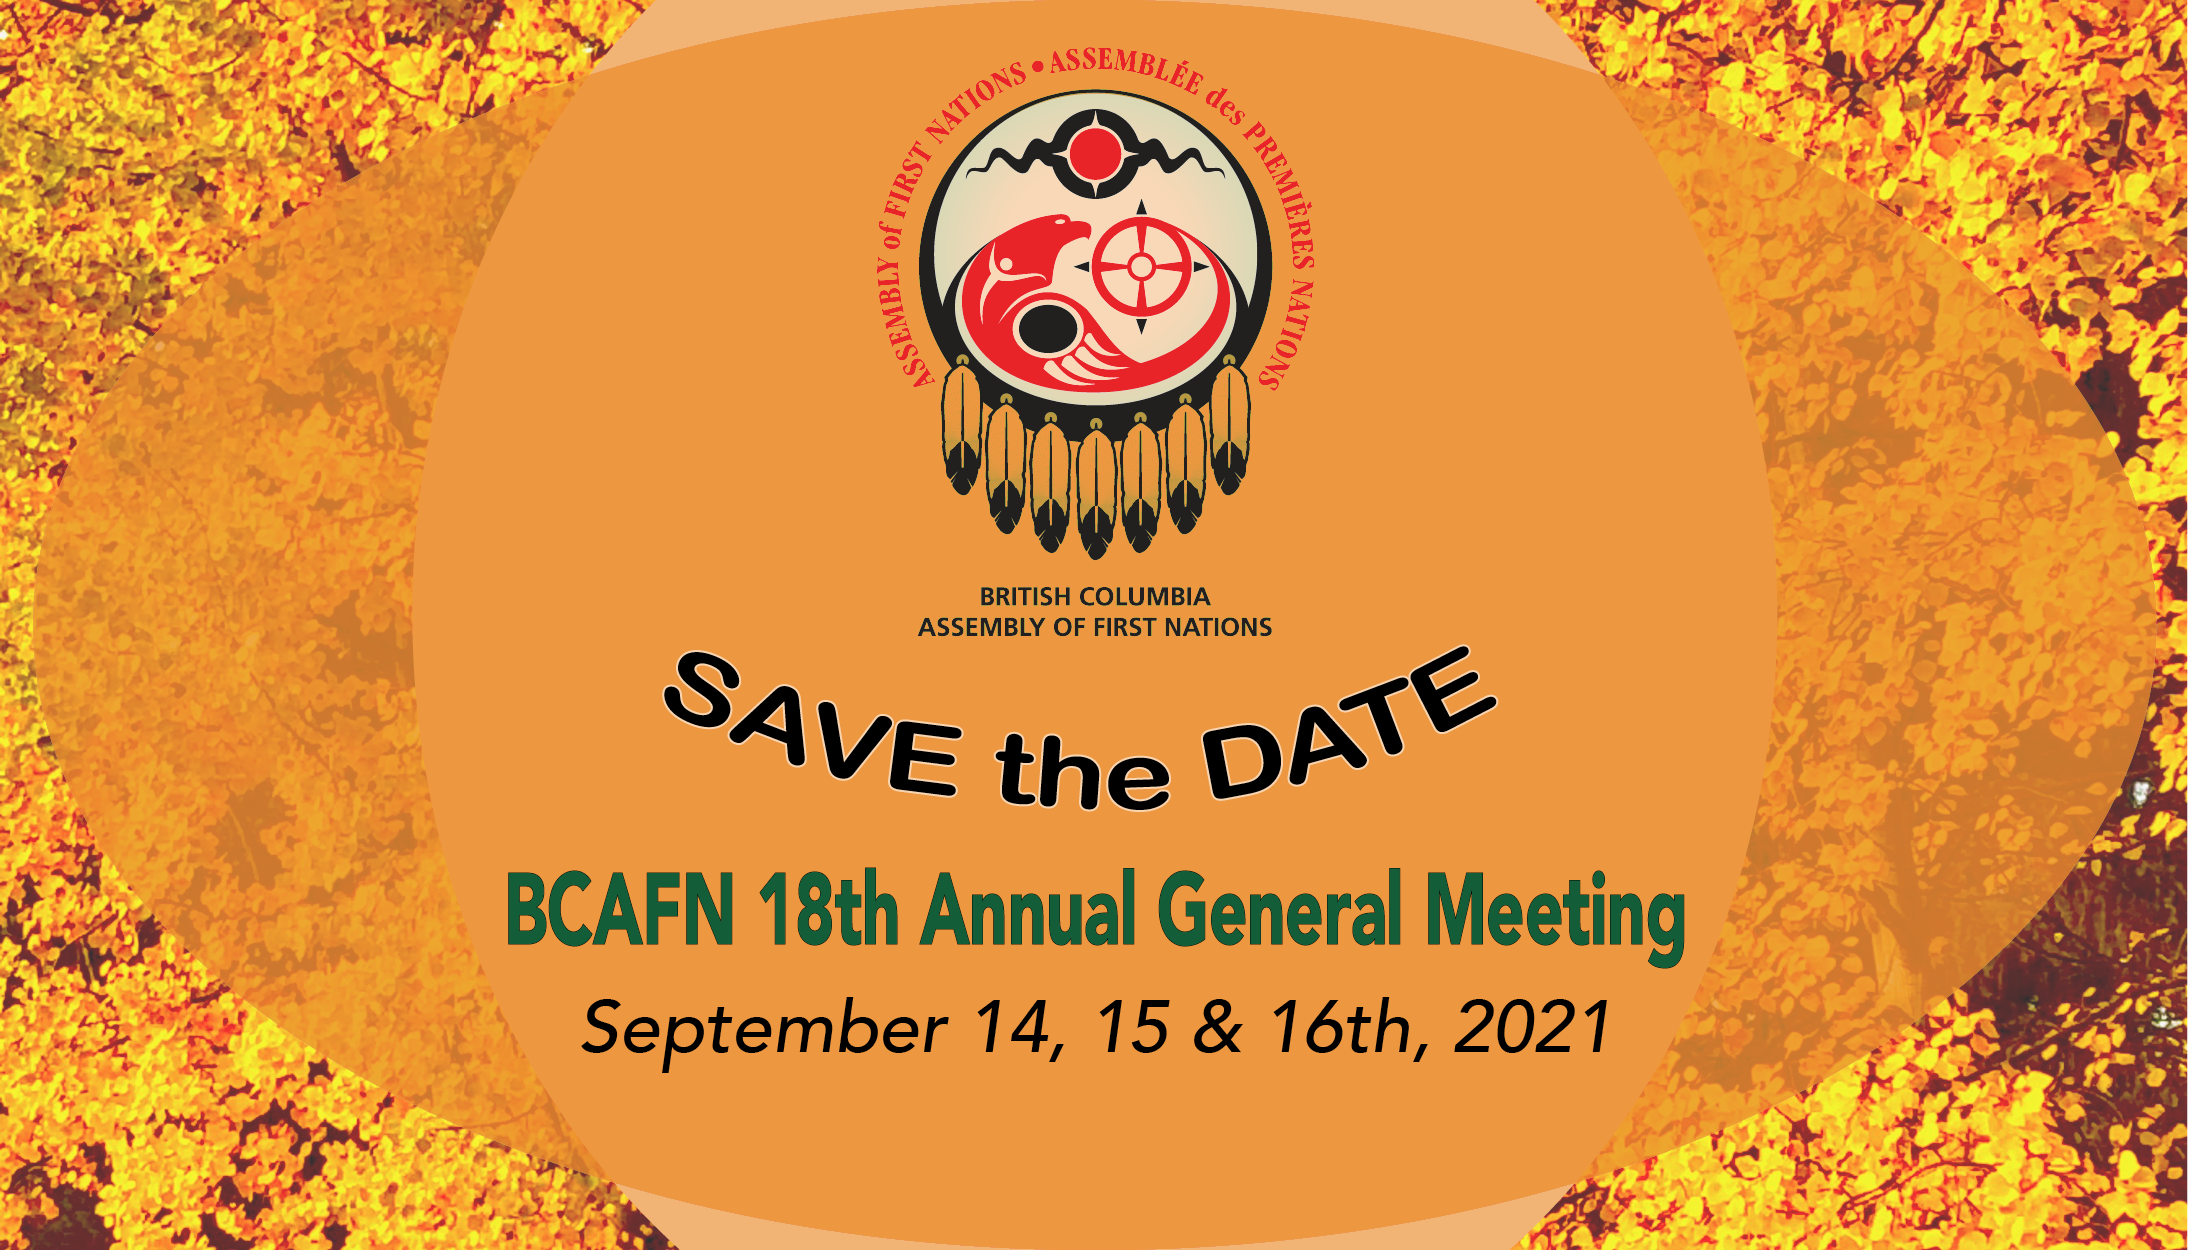 BCAFN AGM 2021 save the date